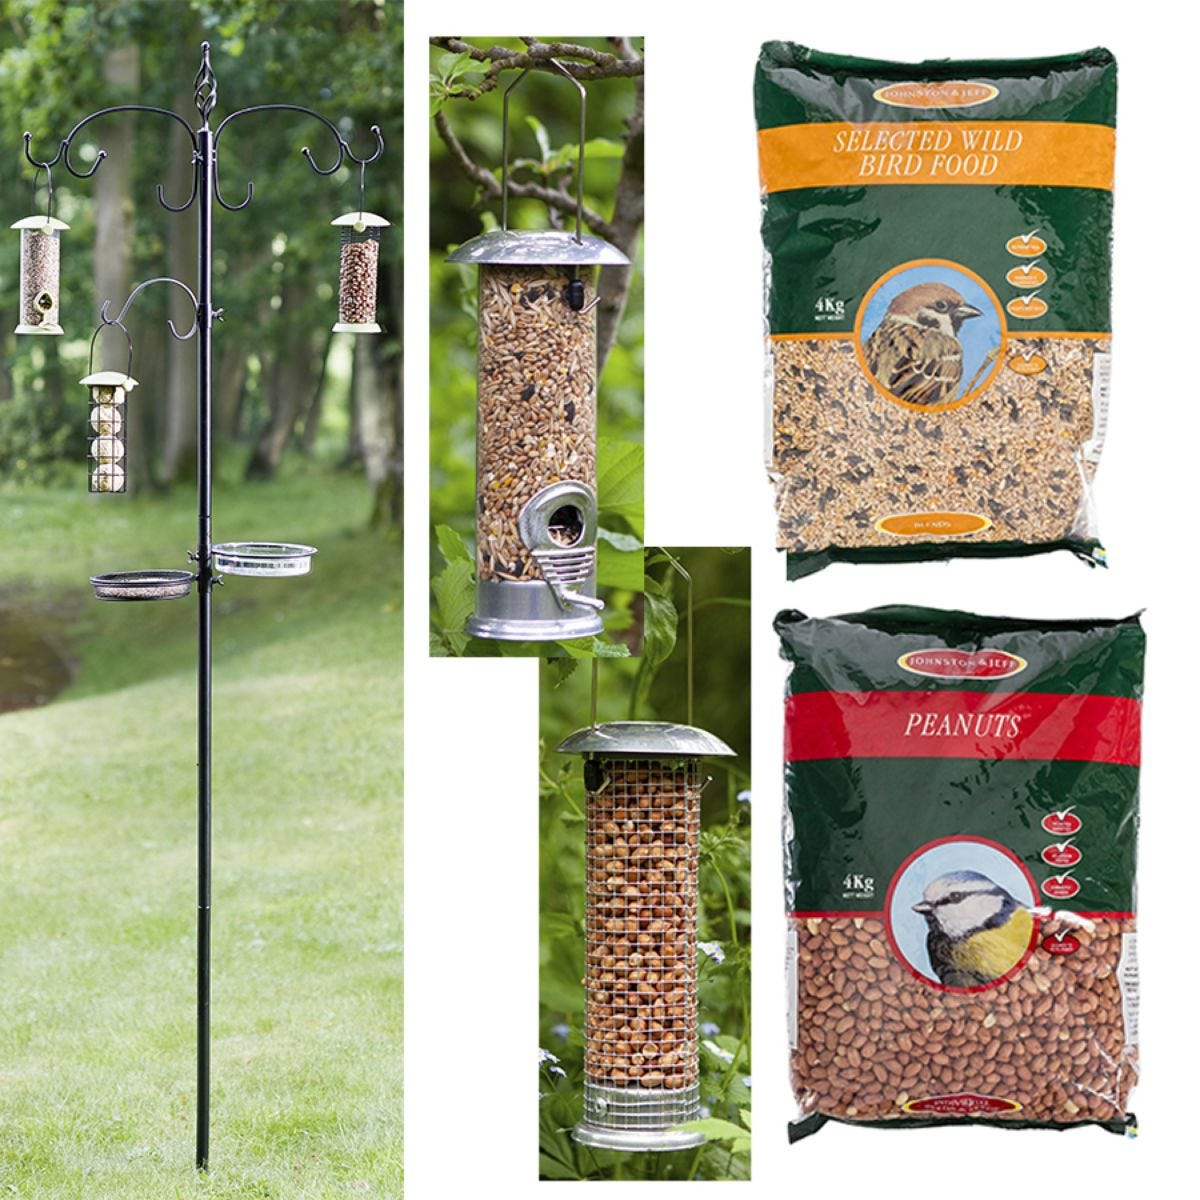 Smart Garden Bird Feeding Station with Feeders and Feed